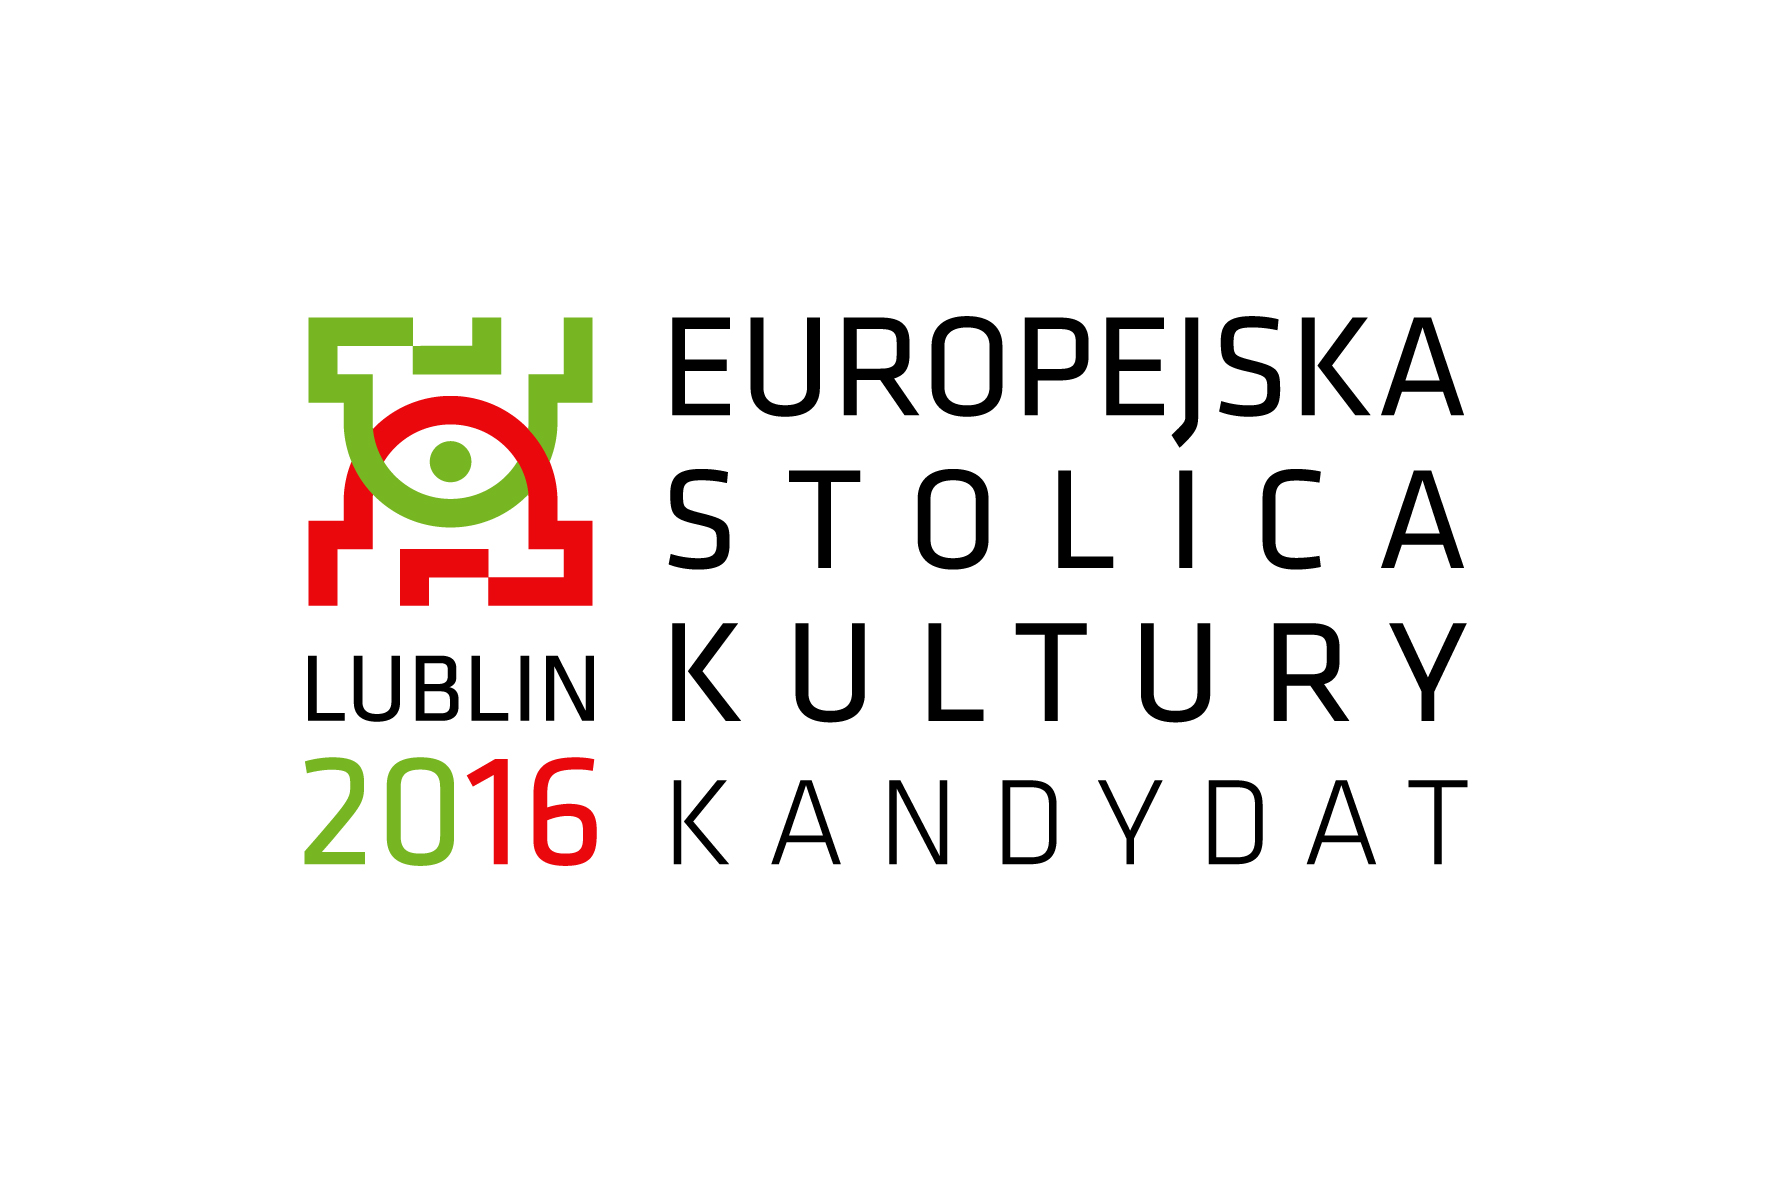 Lublin - European Capital of Culture (Candidate for 2016)